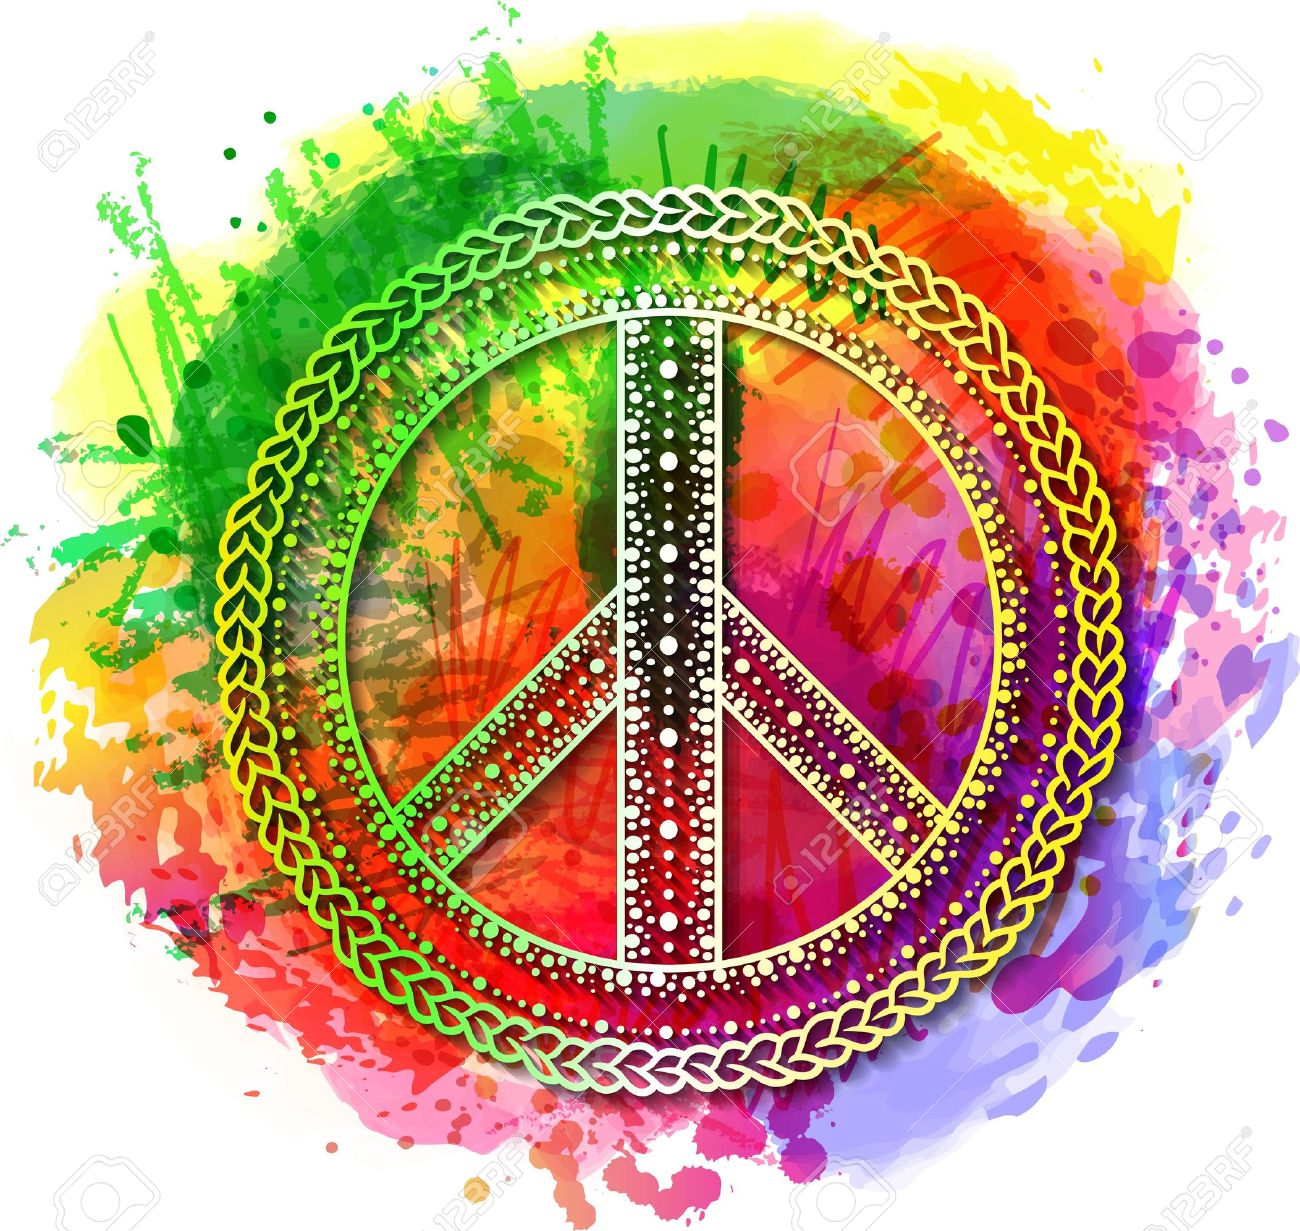 Peace hippie symbol over colorful rainbow background illustration peace hippie symbol over colorful rainbow background illustration for t shirt print over abstract voltagebd Choice Image